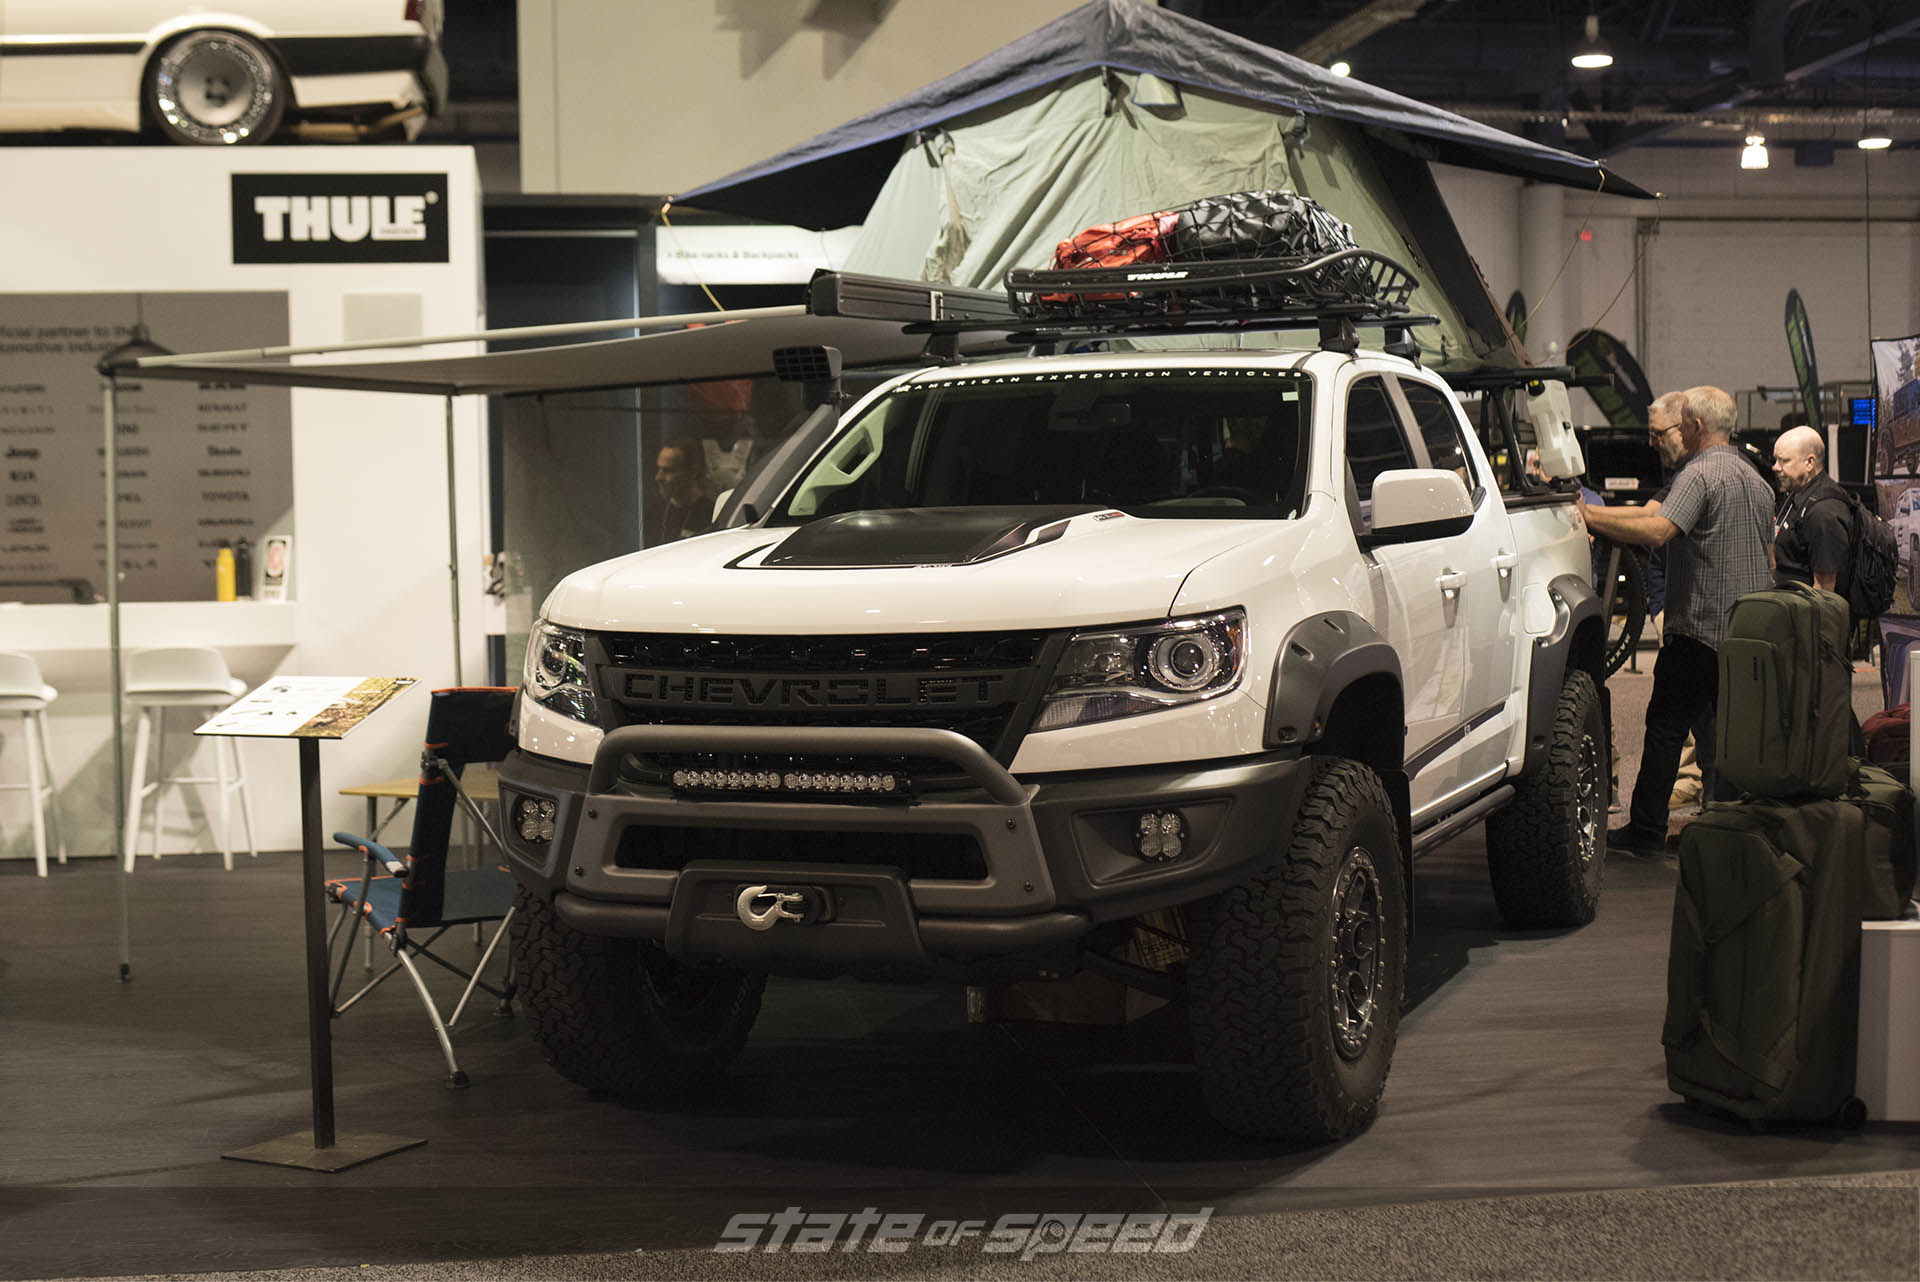 Thule booth displaying an overland chevrolet